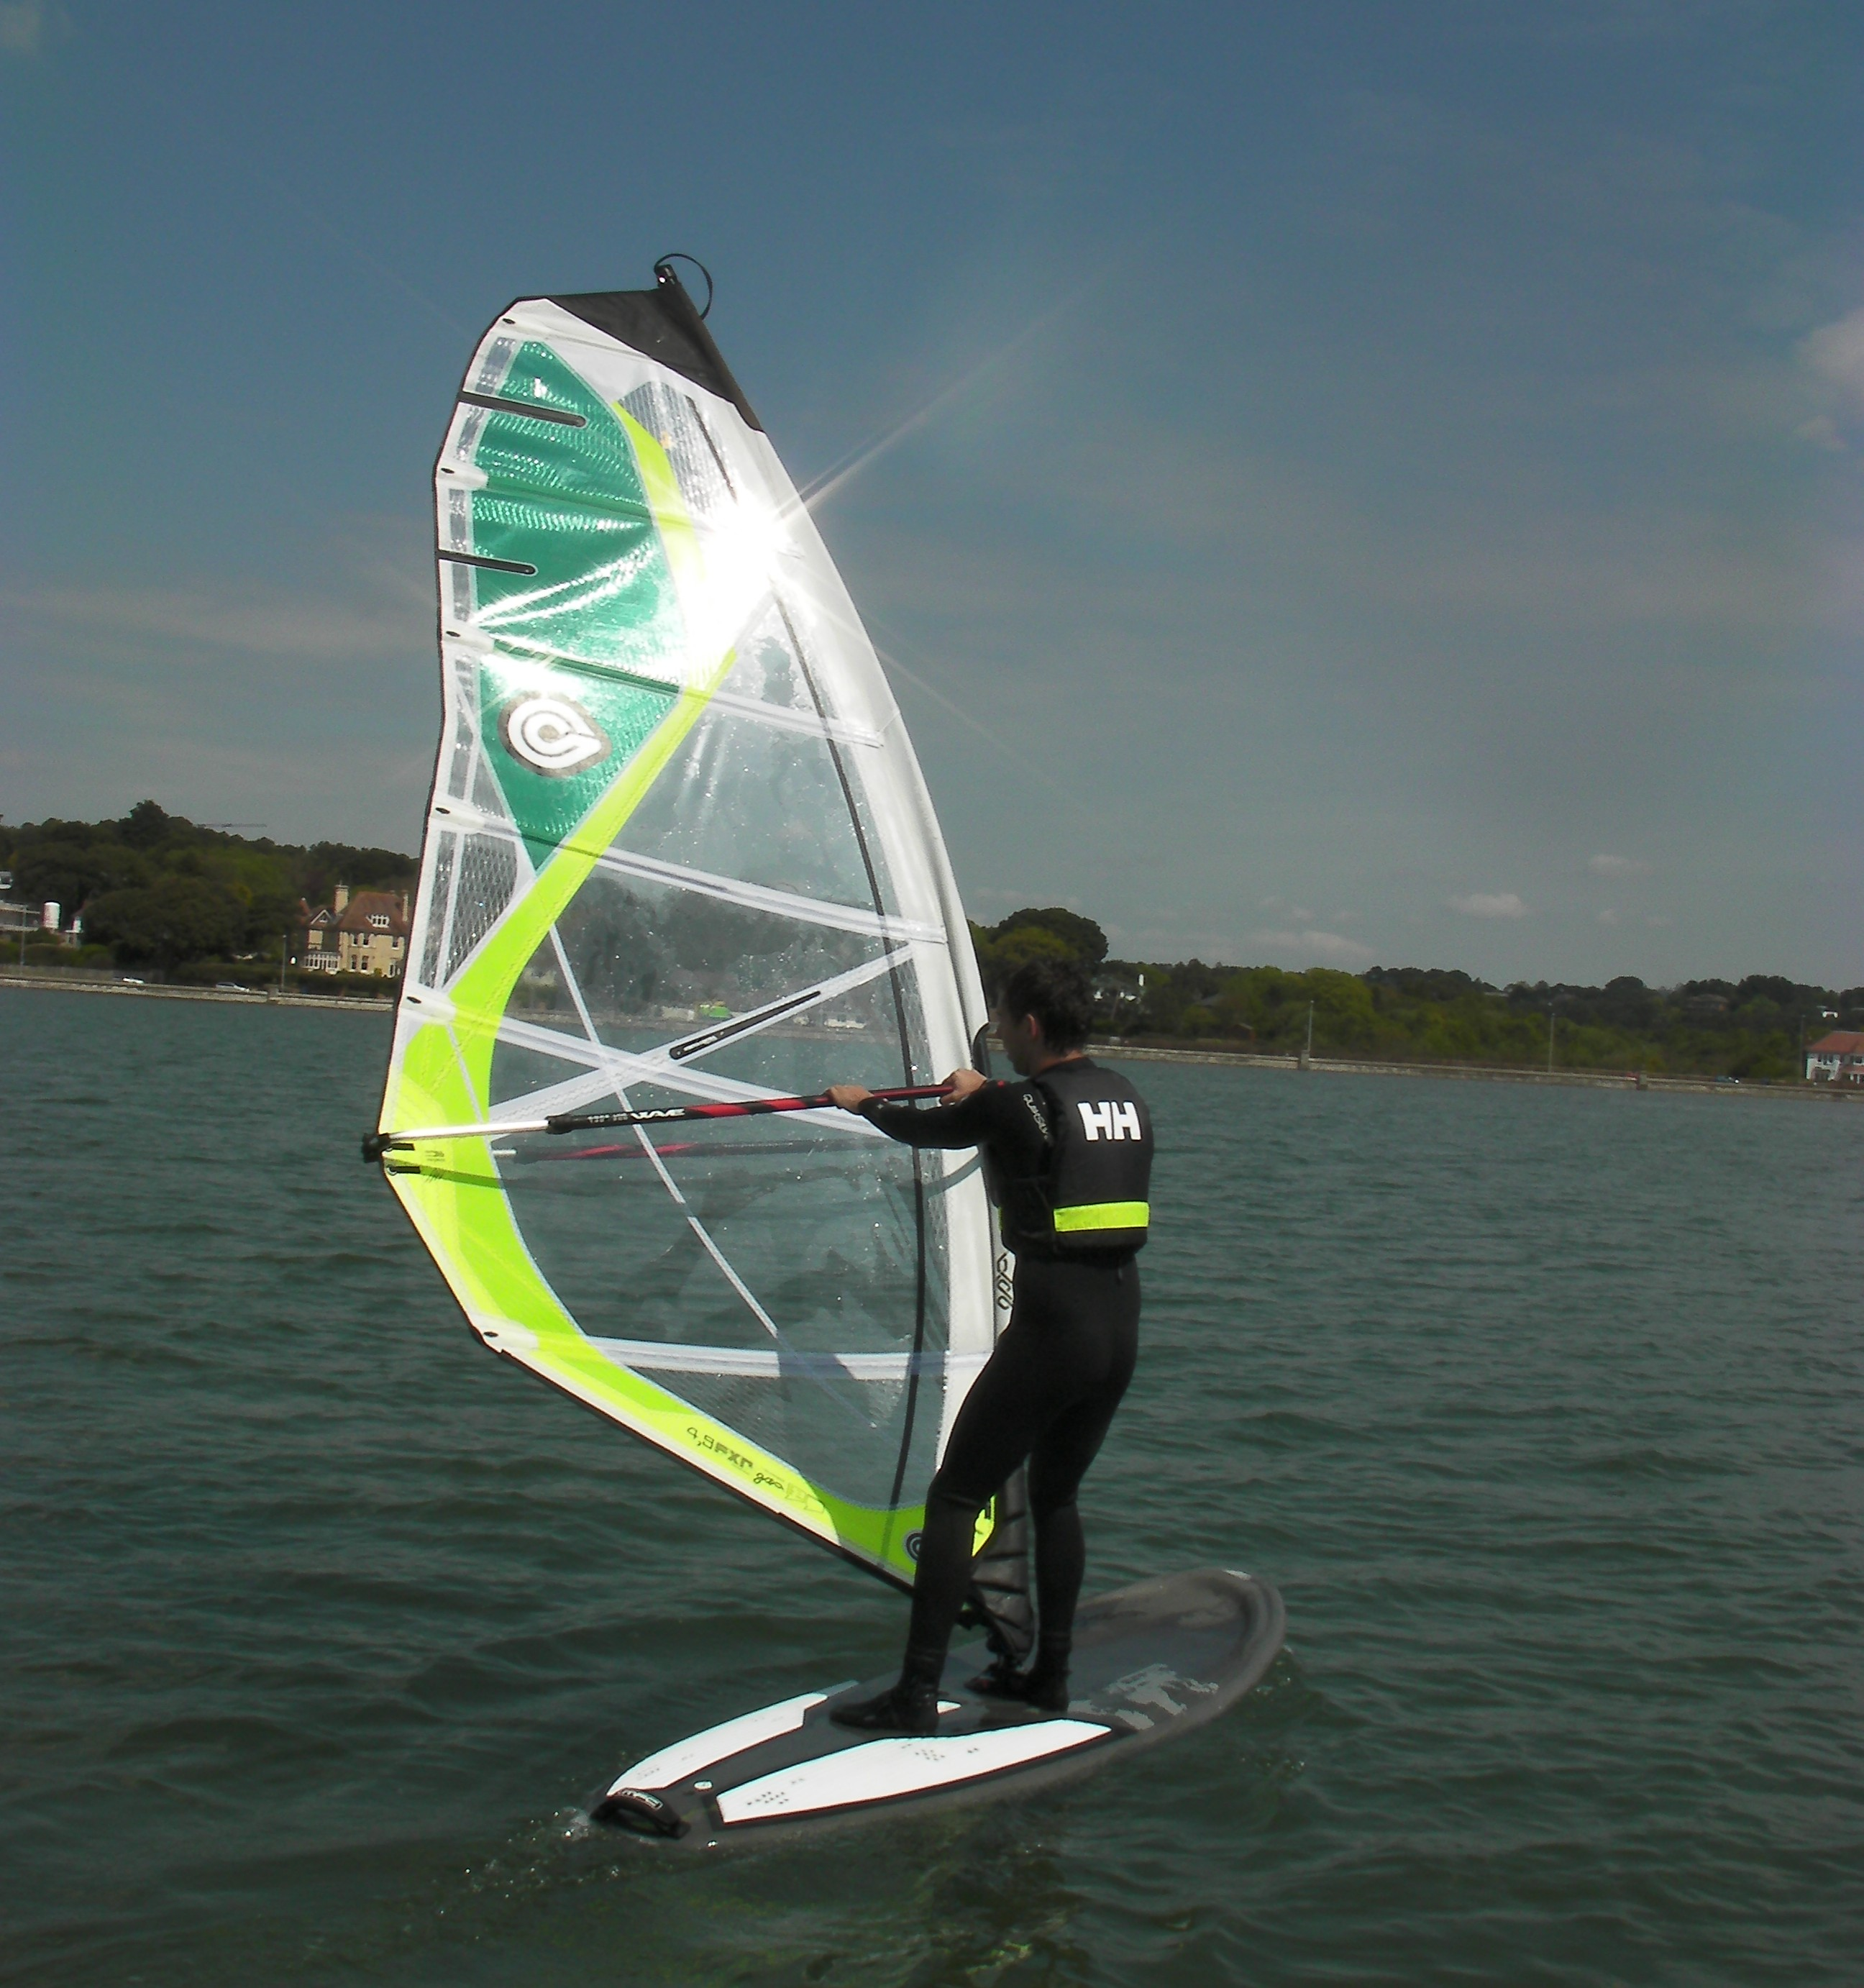 Follow the Windsurfing Photo & Video Action from Poole Windsurfing